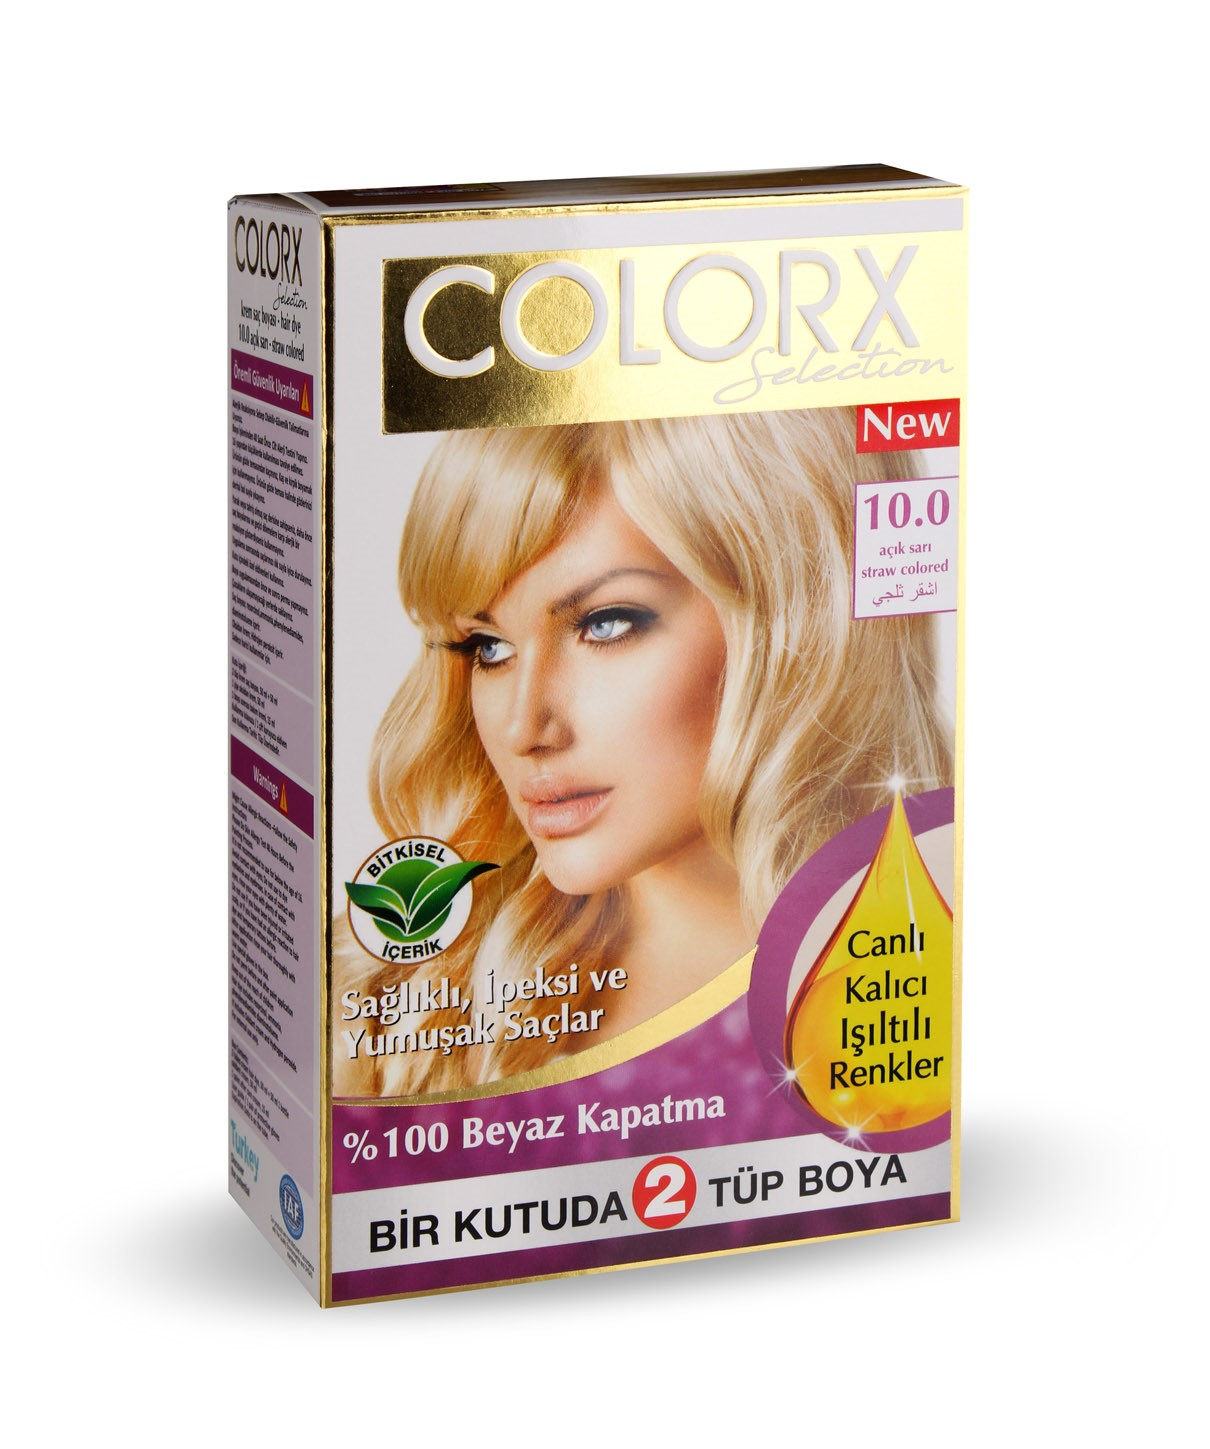 Colorx Selection Double Set Of Cream Hair Dye Oranj Cosmetics